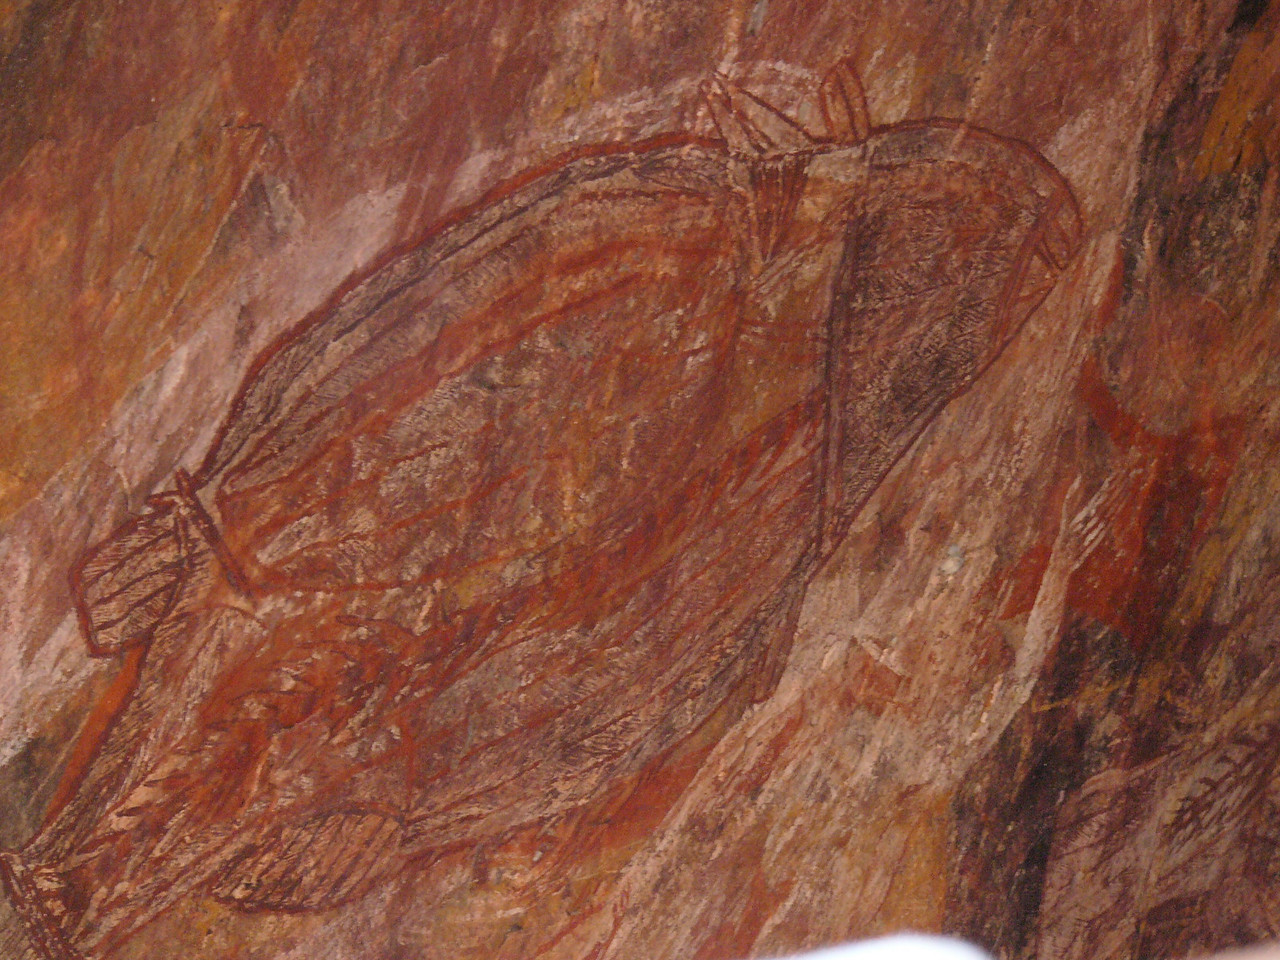 Aboriginal rock painting at Ubirr, Kakadu National Park. This is a picture of a fish done 'X-Ray' style.